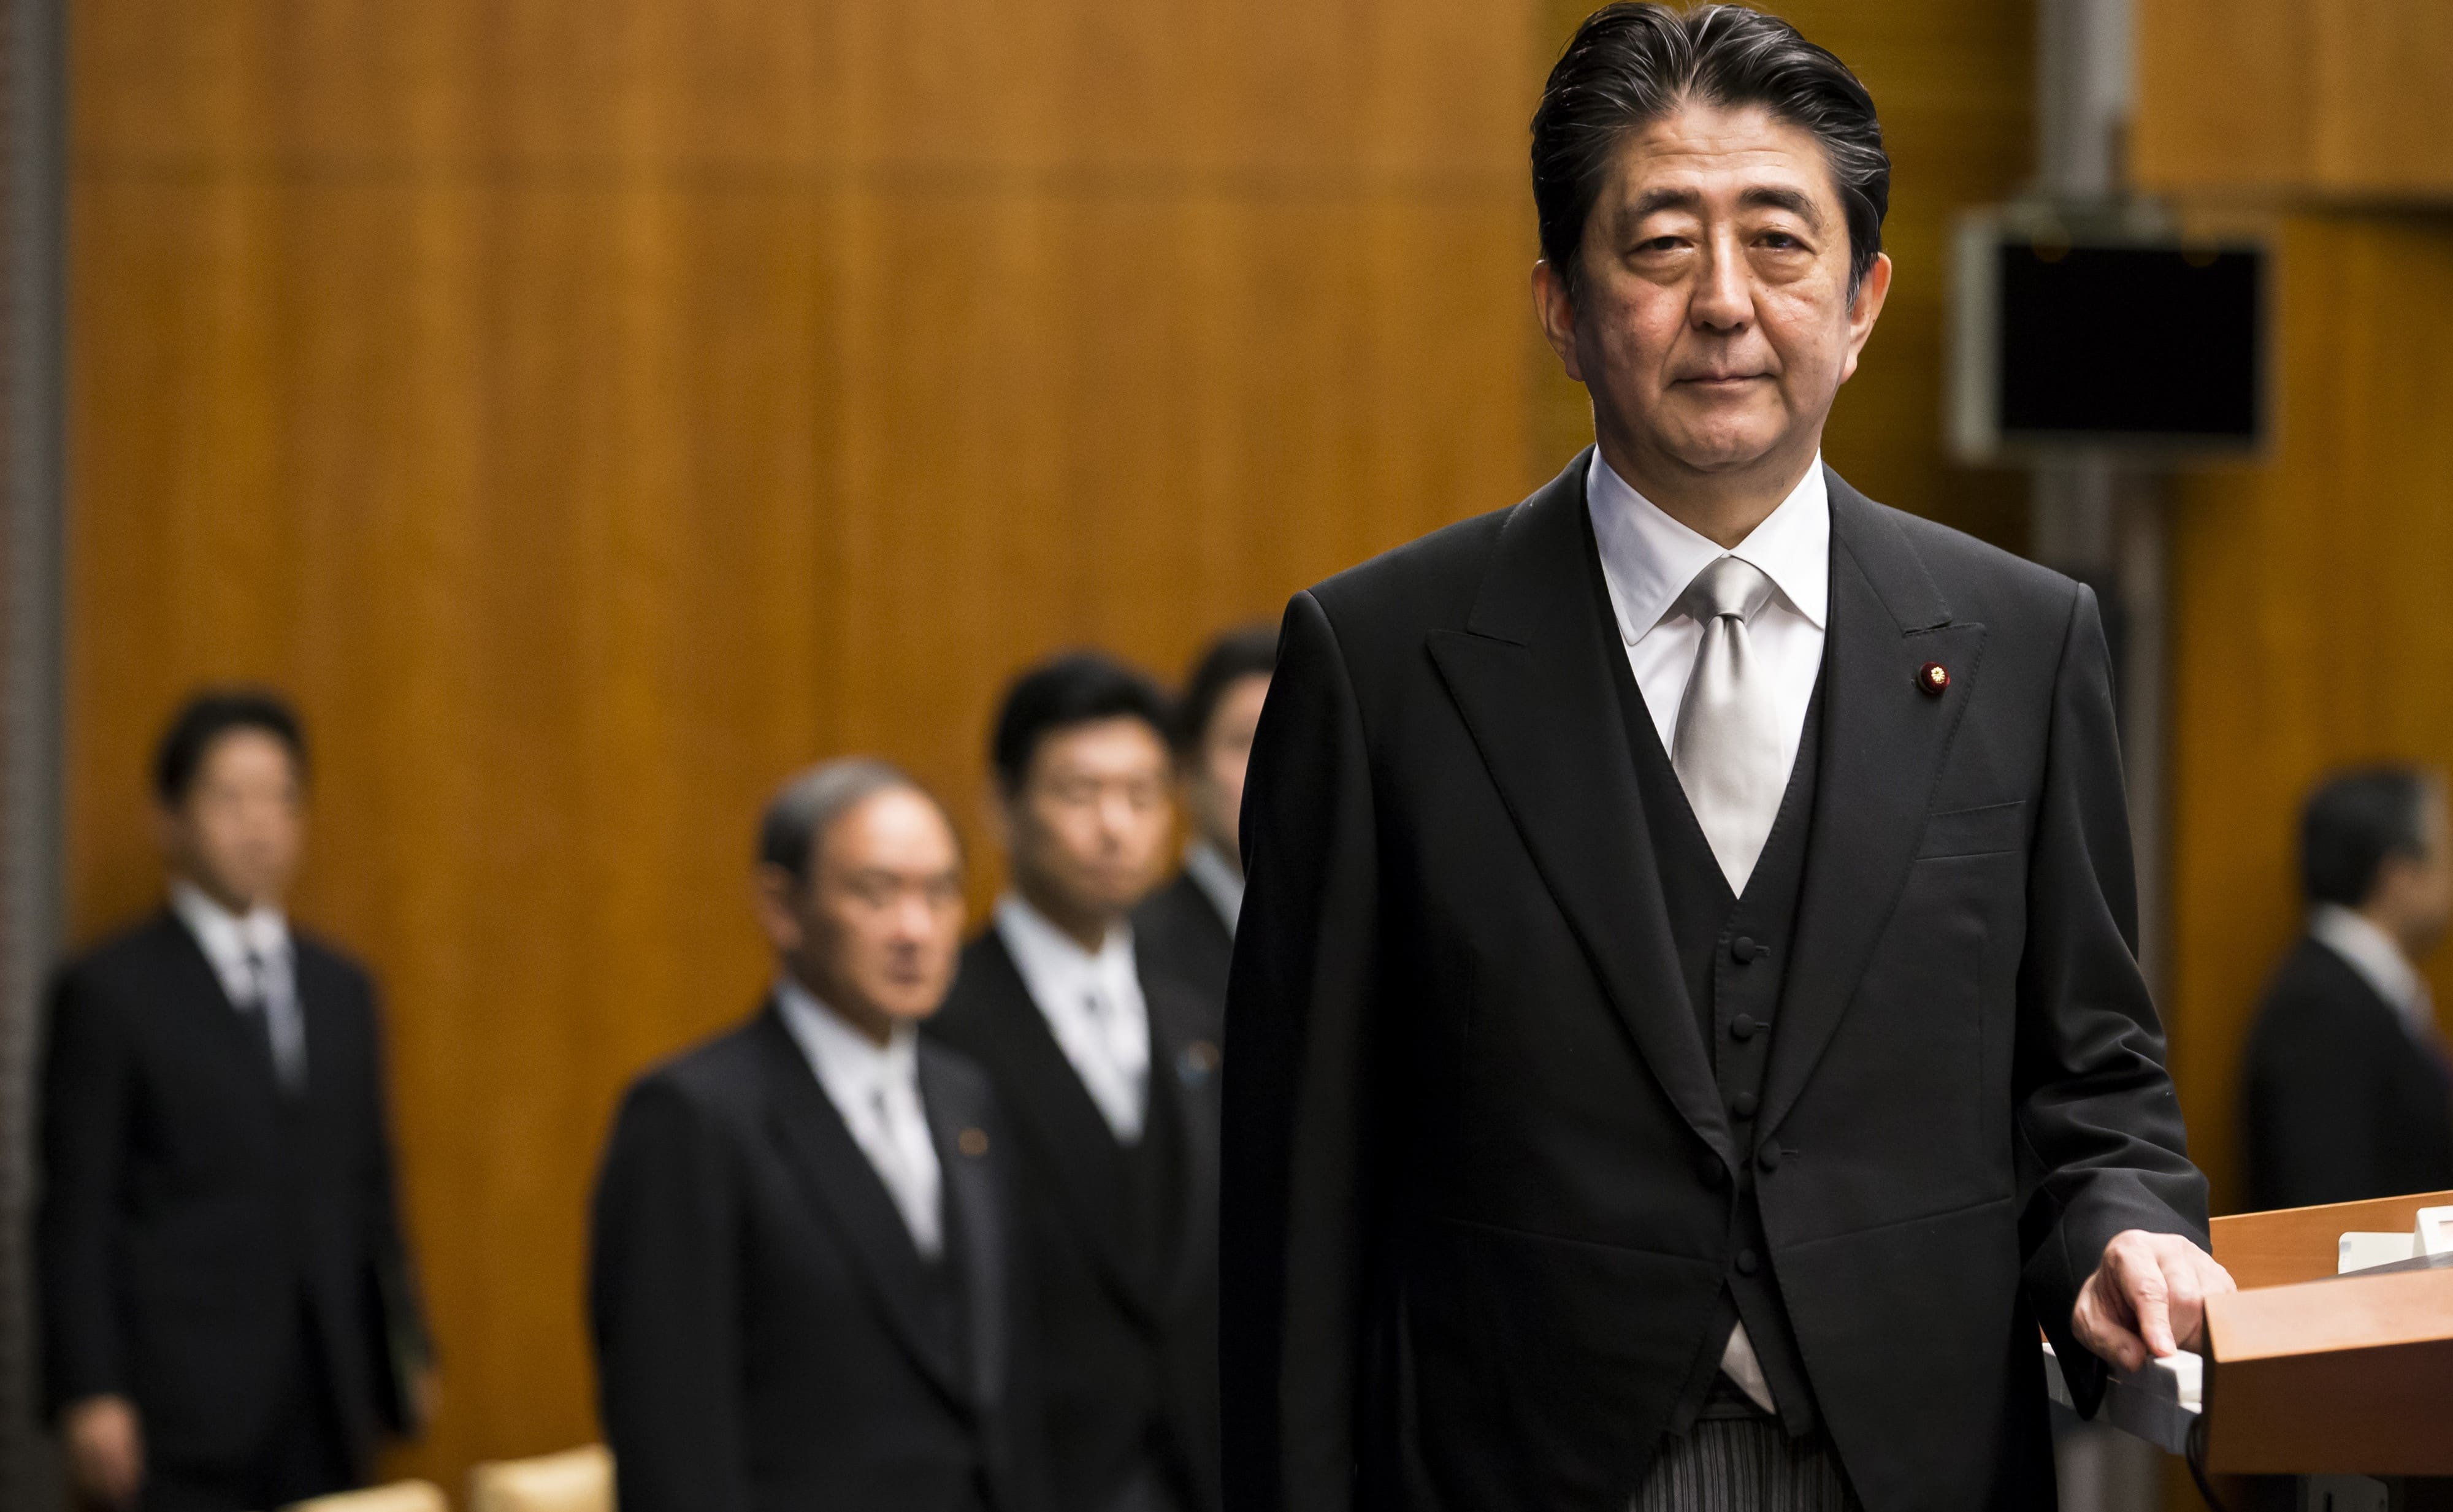 Japanese Prime Minister Shinzo Abe at a press conference, 3 Aug 2017 (Photo: Getty Images/Bloomberg)